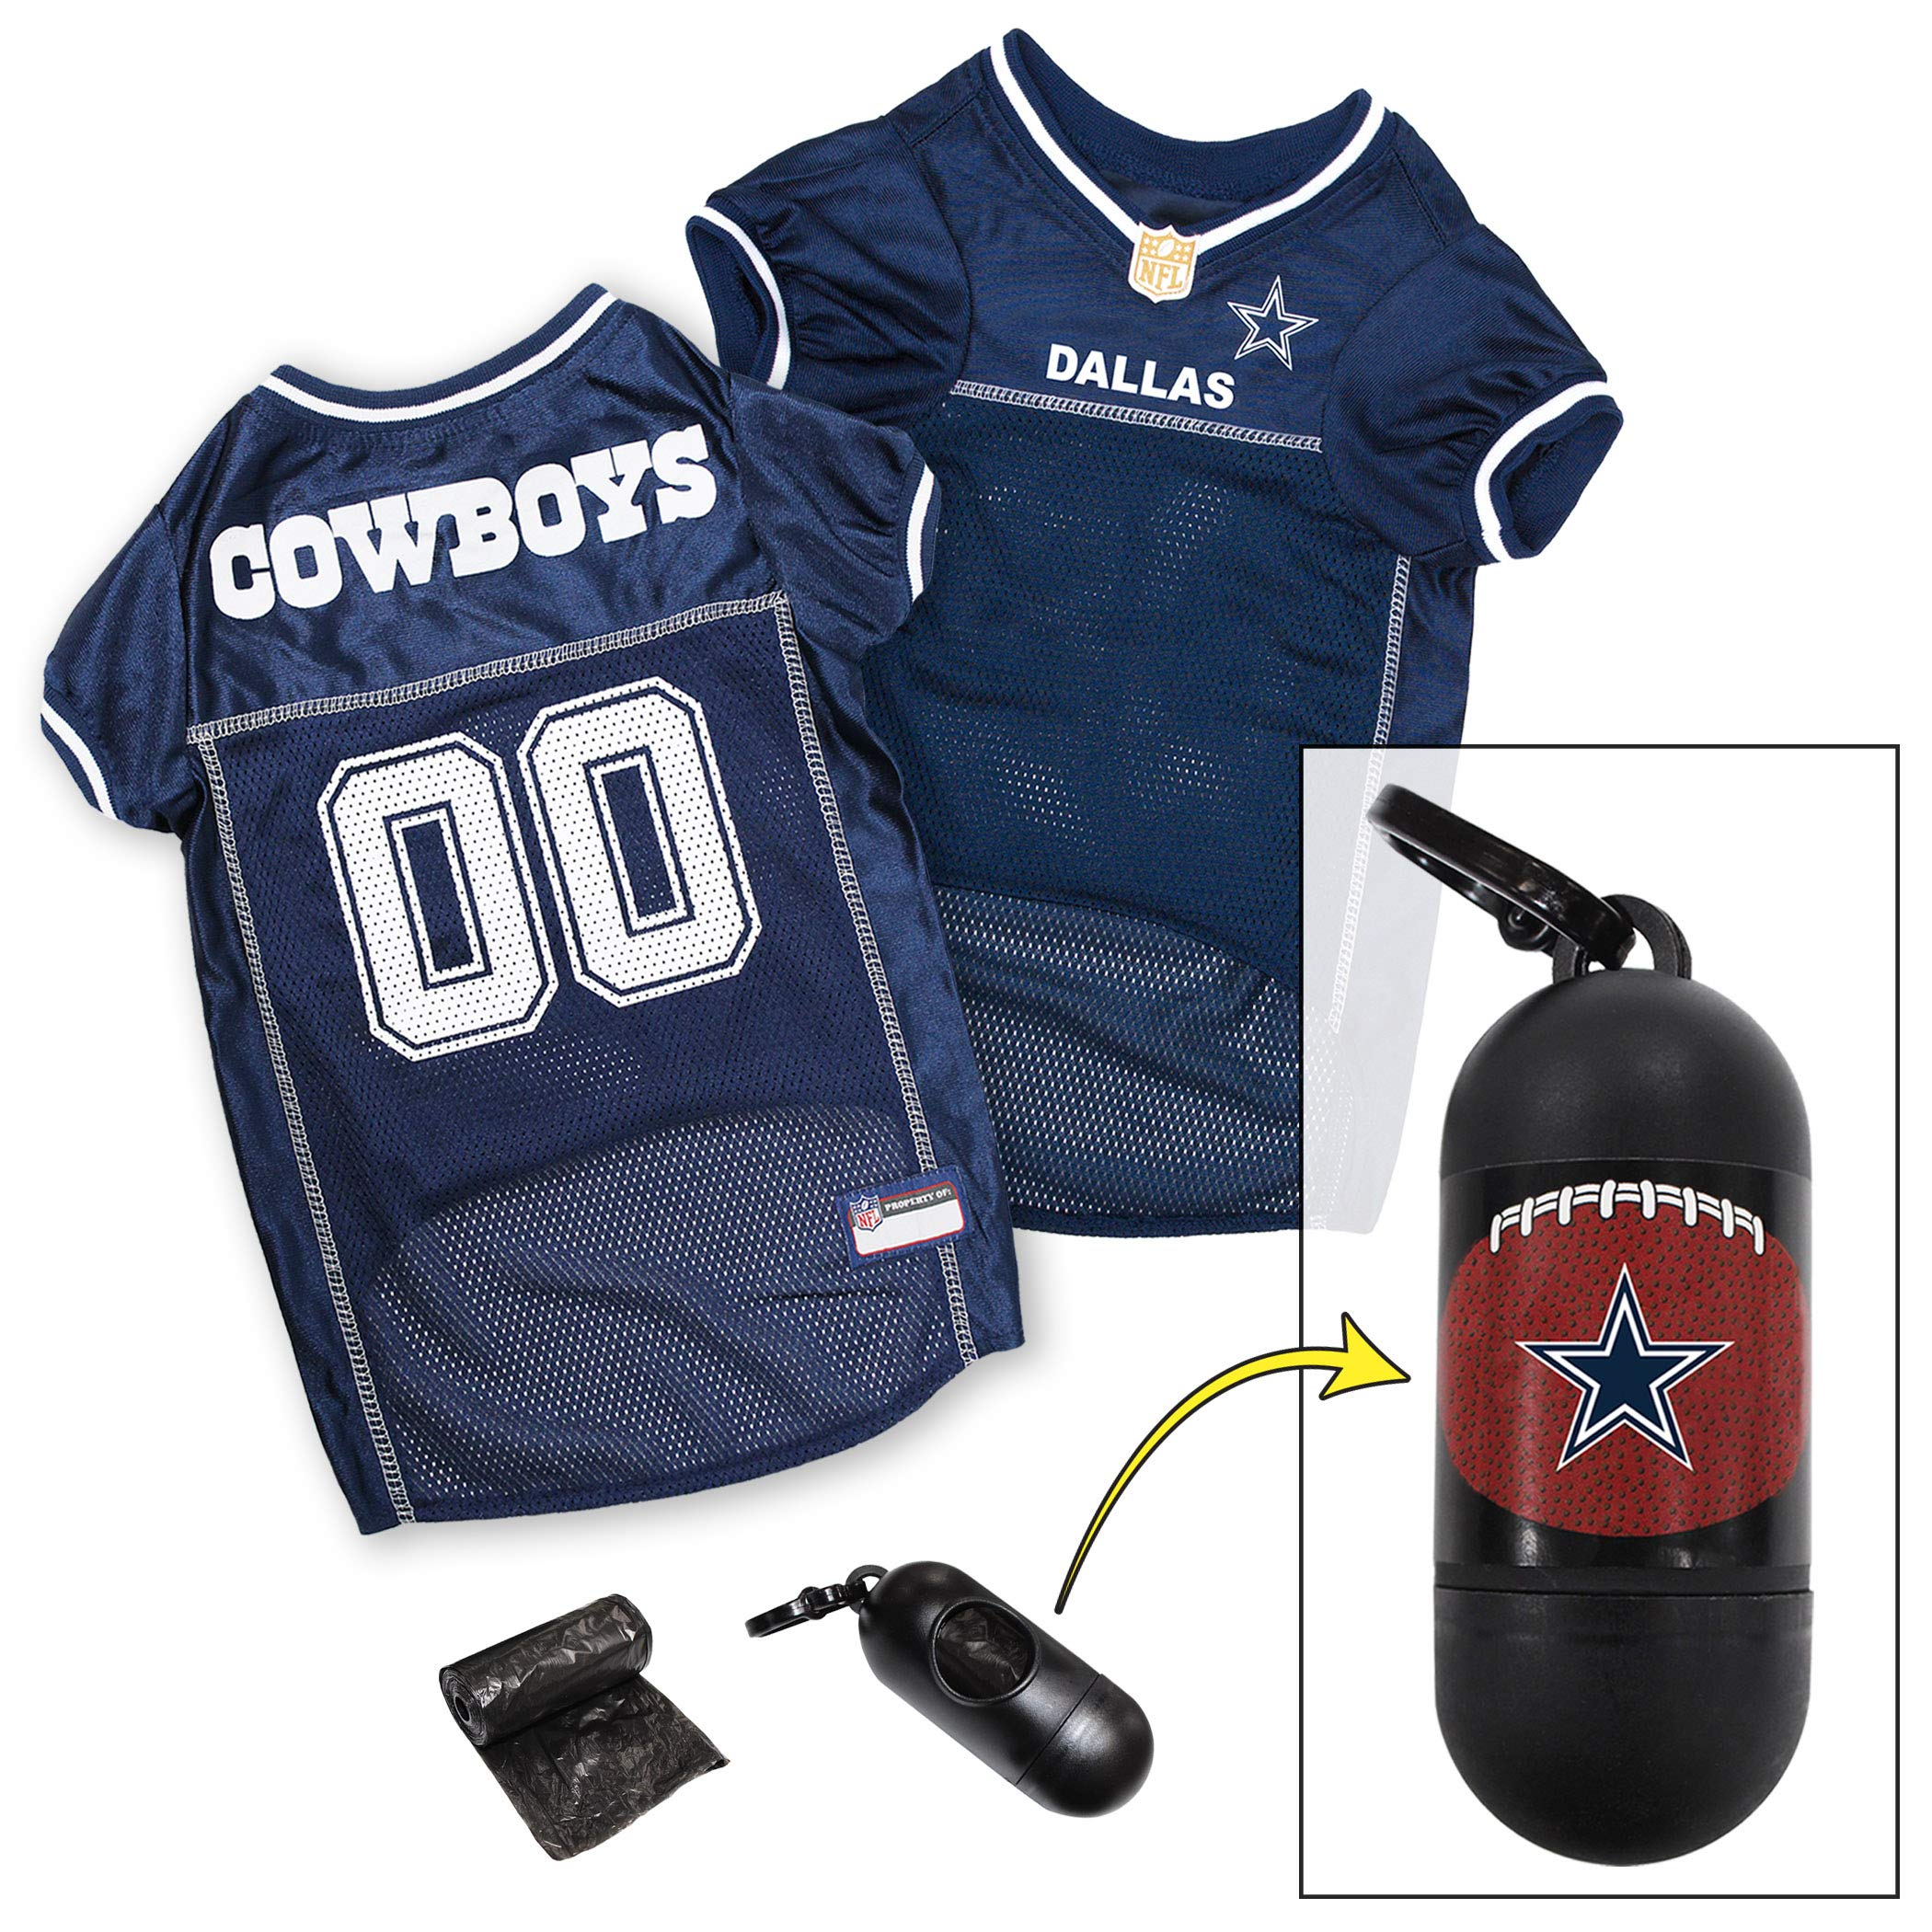 NFL DALLAS COWBOYS DOG Jersey, XX-Large by NFL